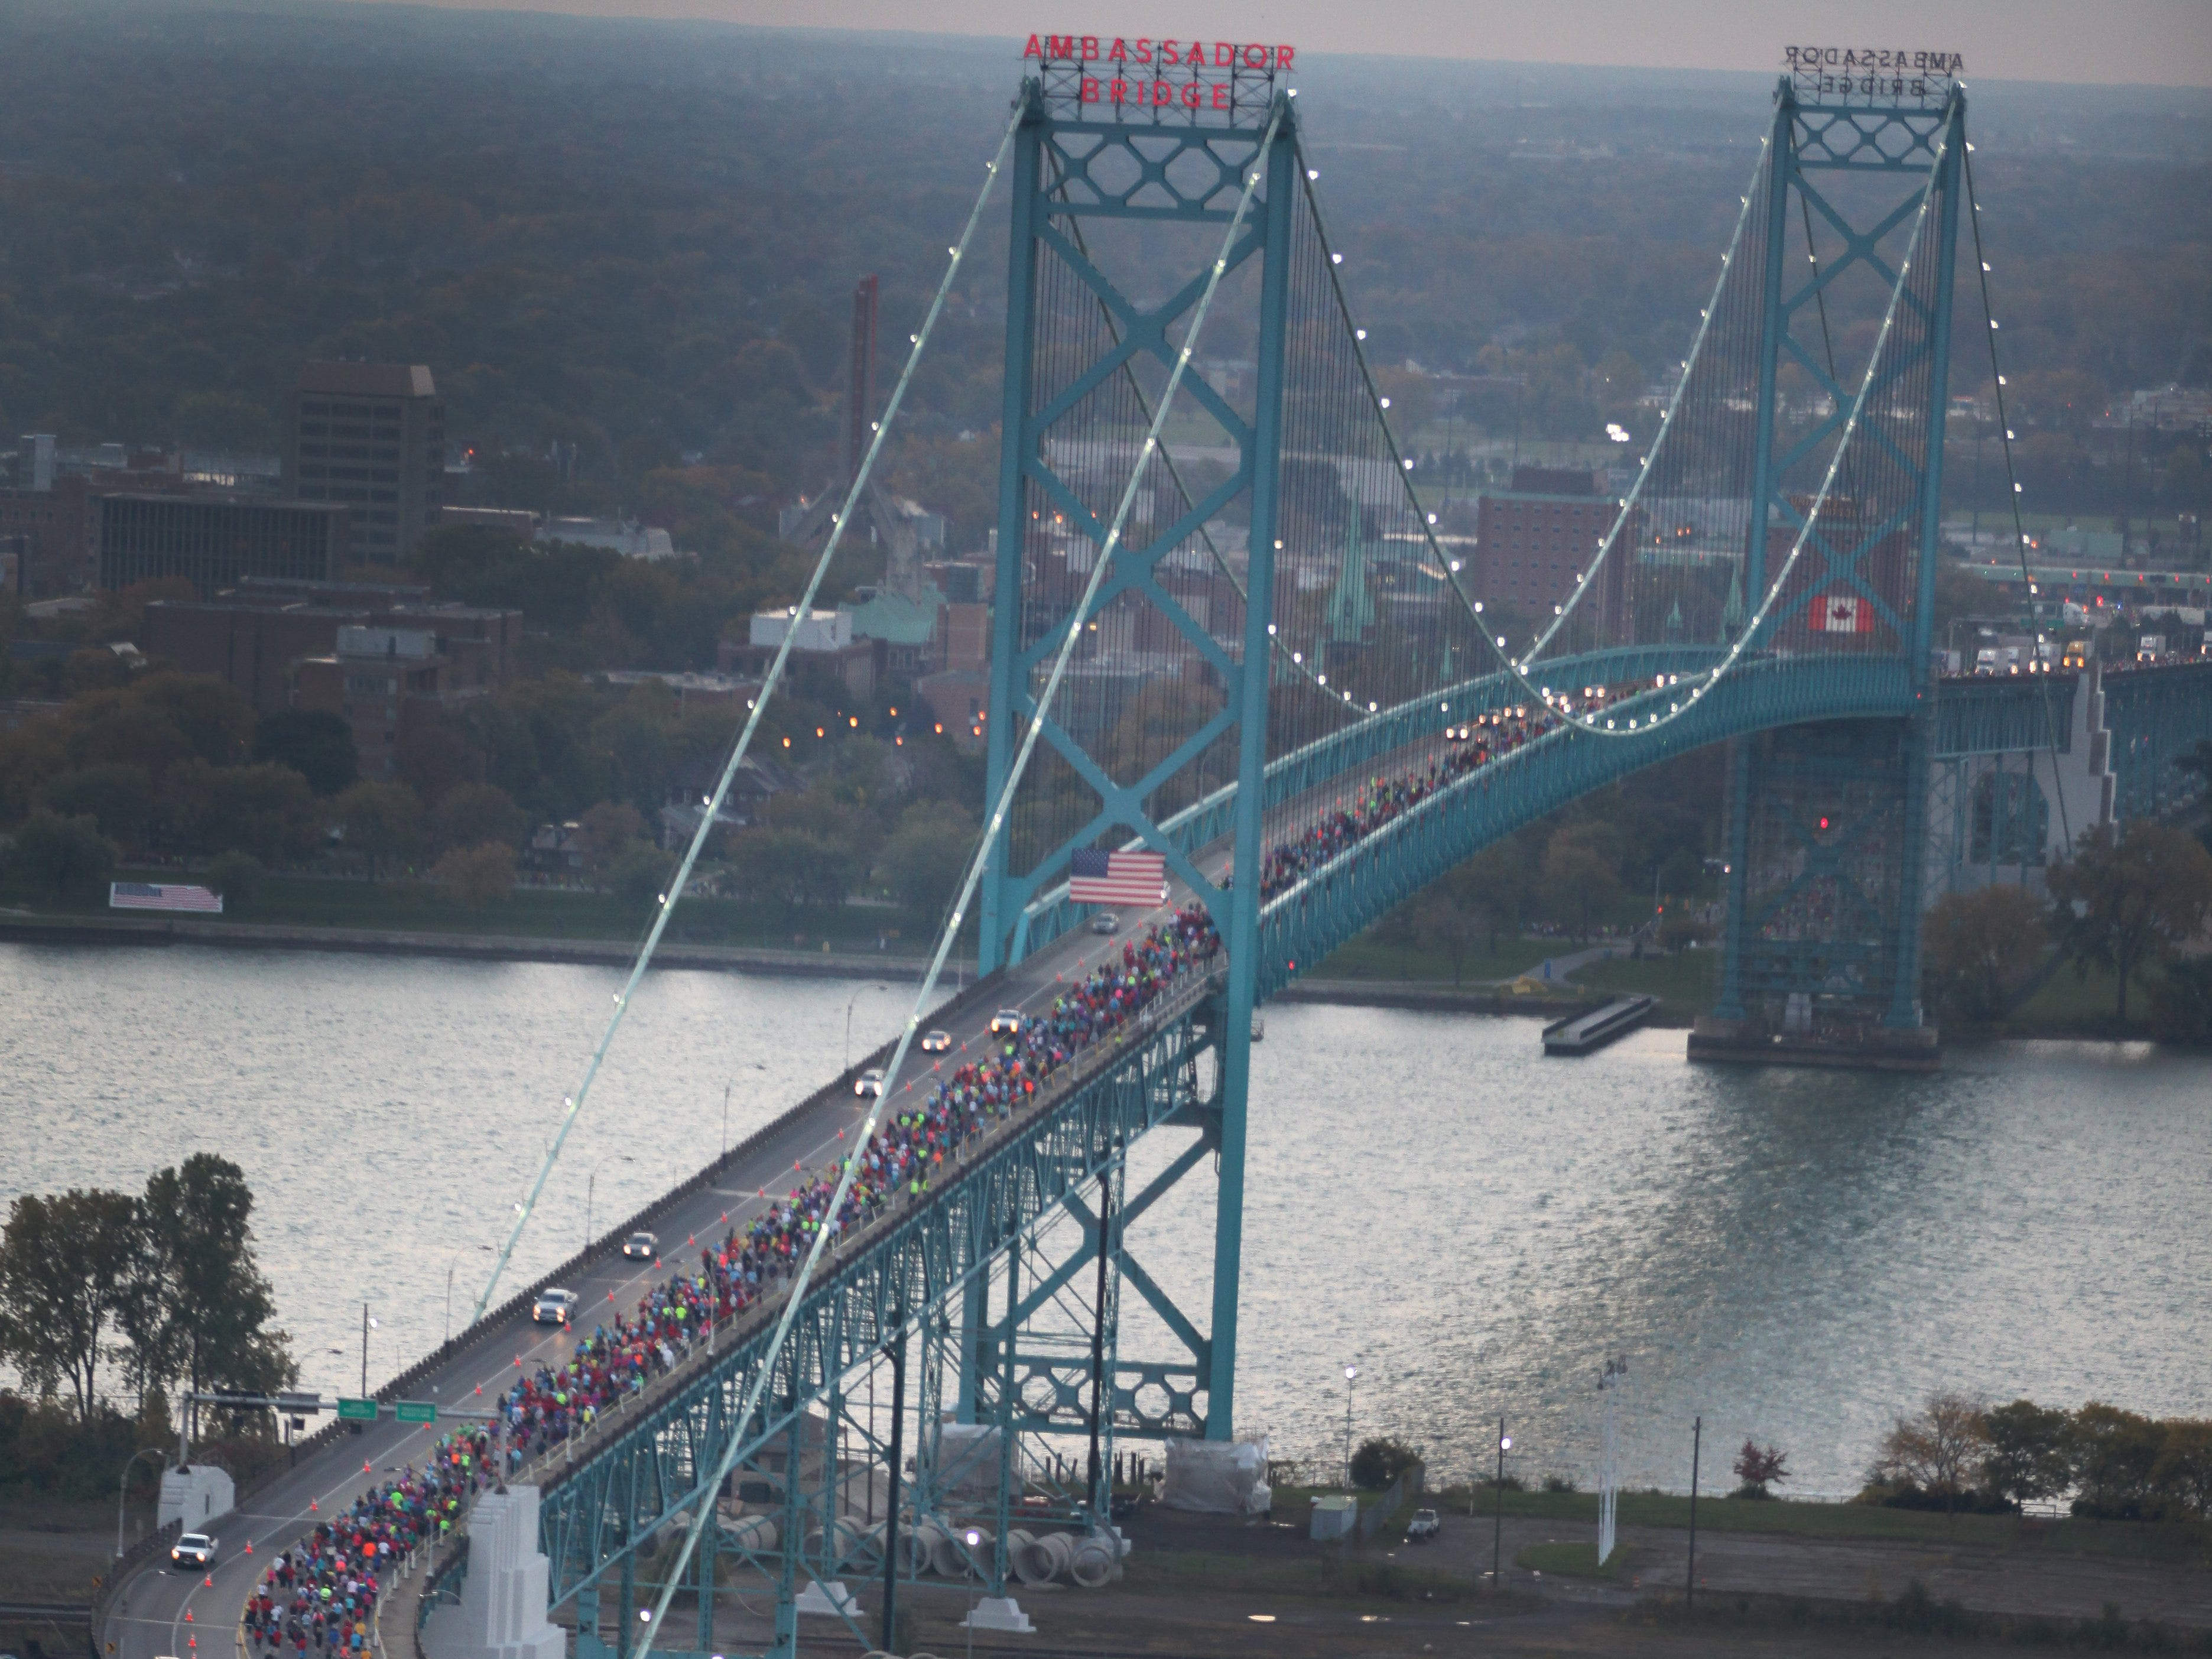 Aerial view of runners crossing the Ambassador Bridge into Canada during the 36th Annual Detroit Free Press/Talmer Bank Marathon in Detroit on Sunday, Oct. 20, 2013.